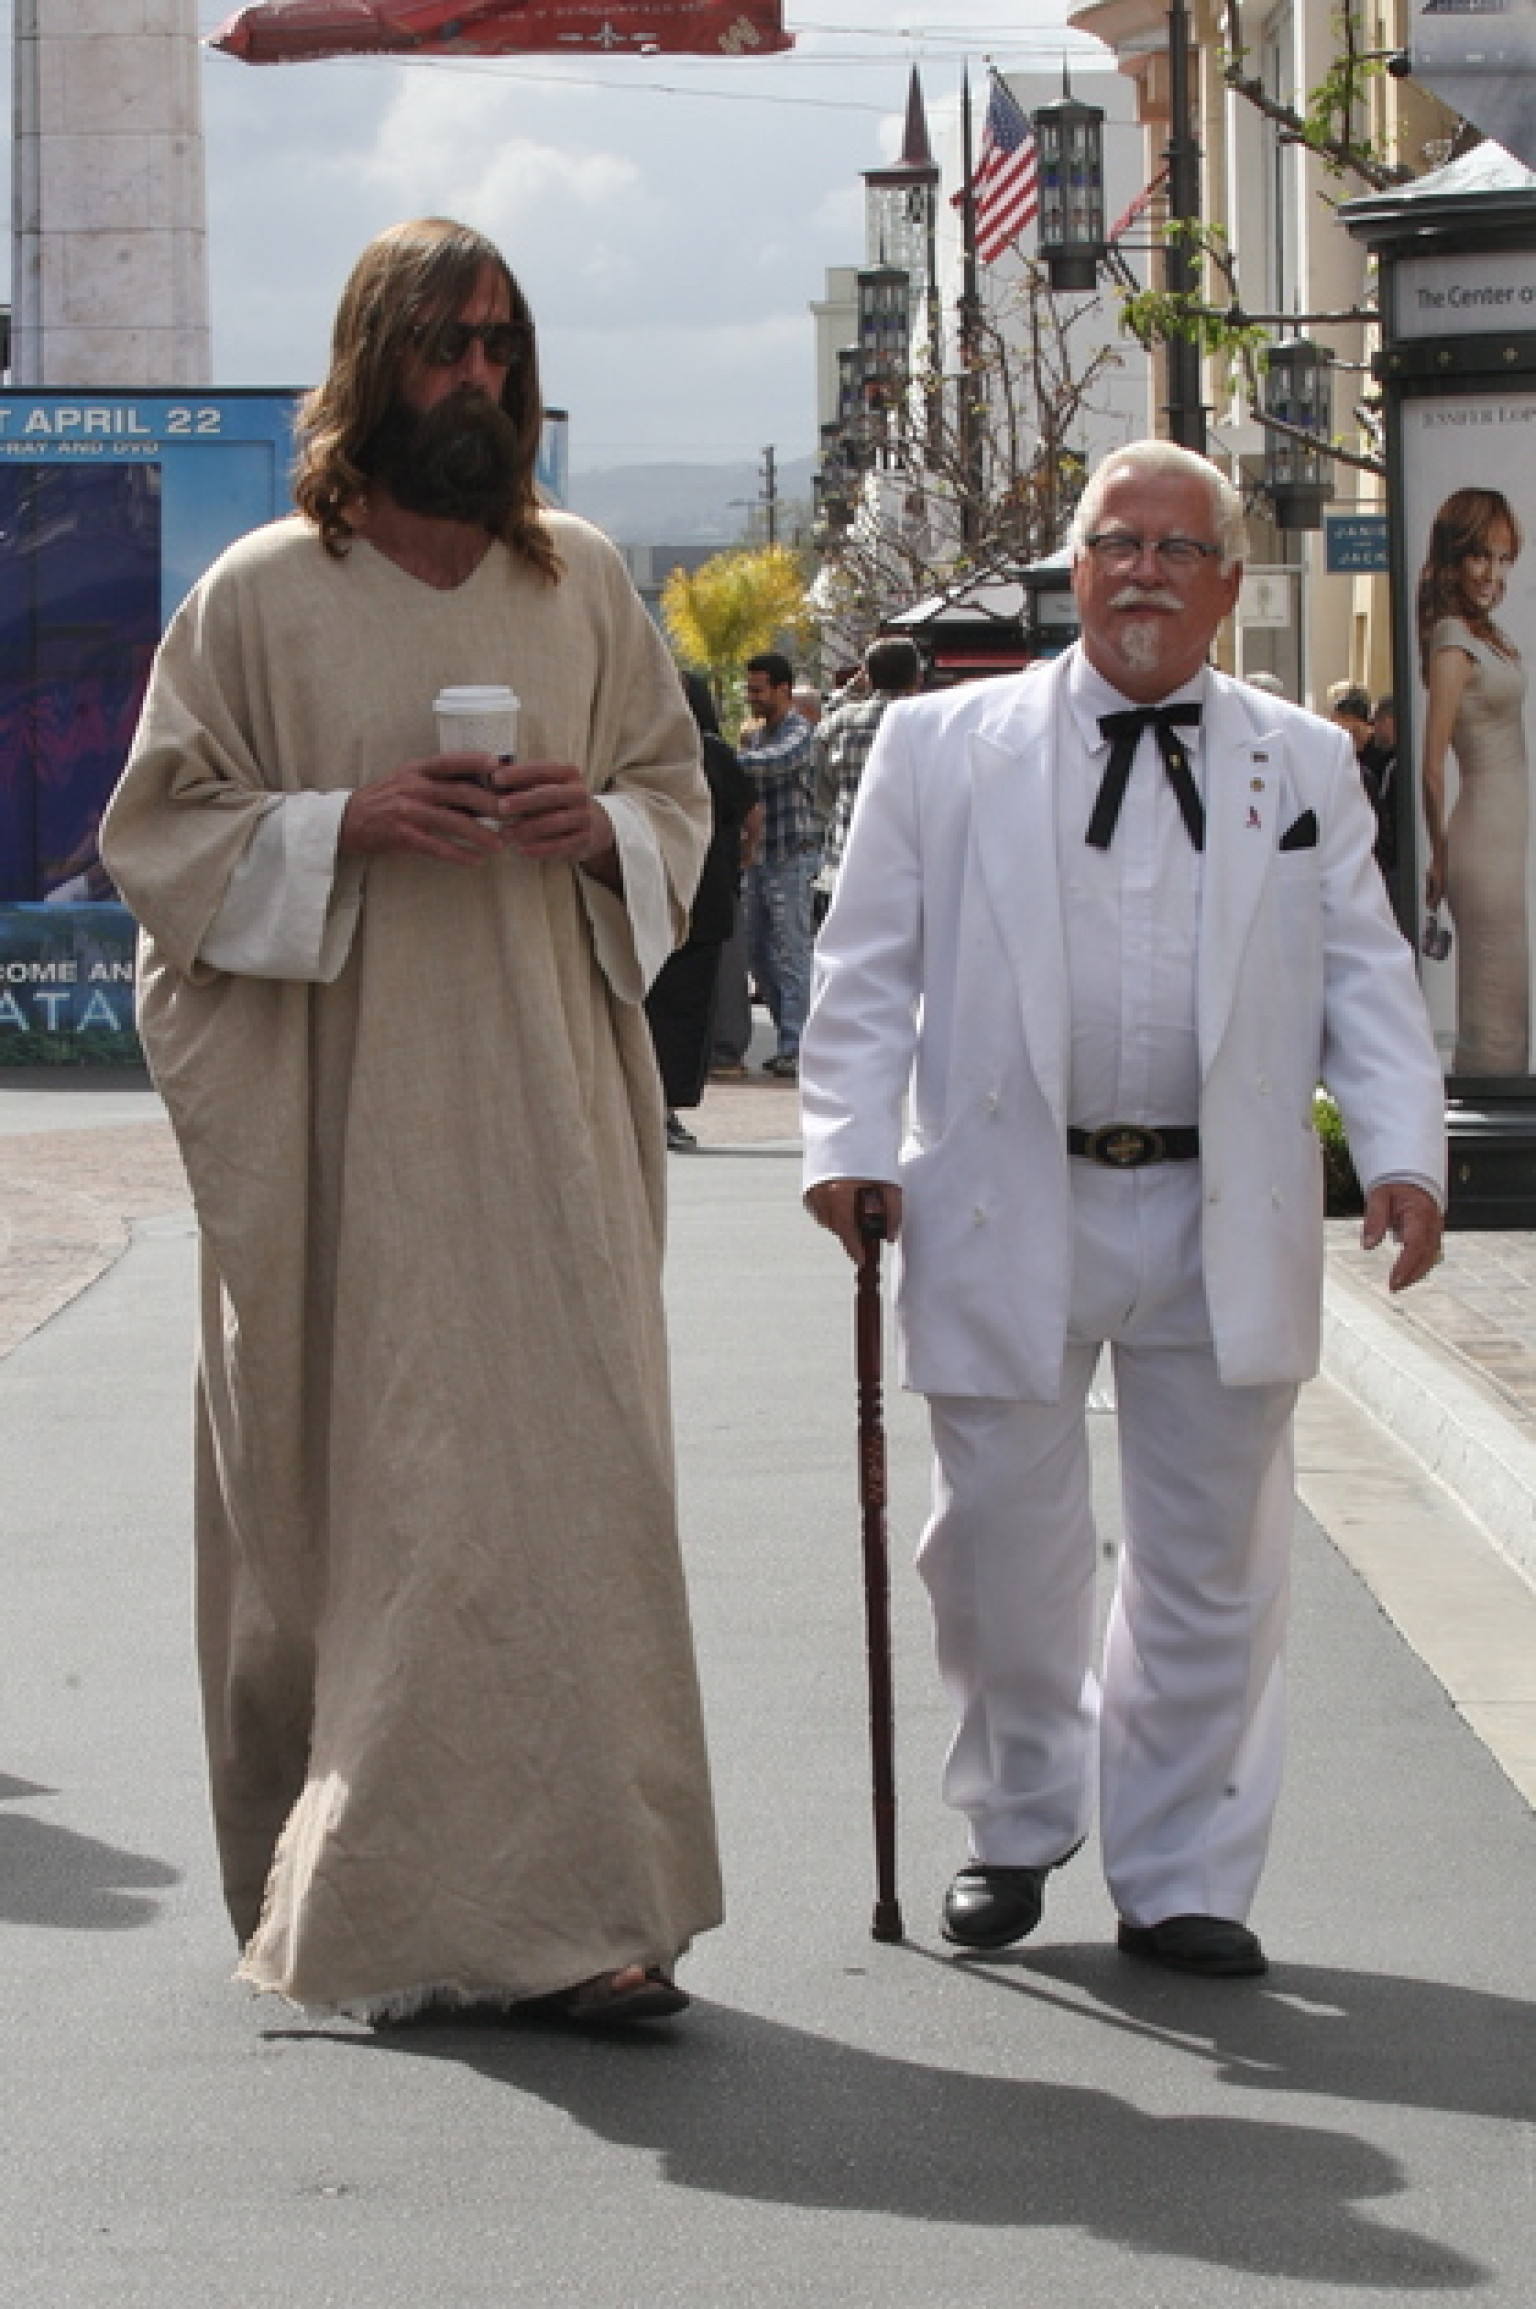 Searching For Weho Jesus An Attempt To Find Meaning On